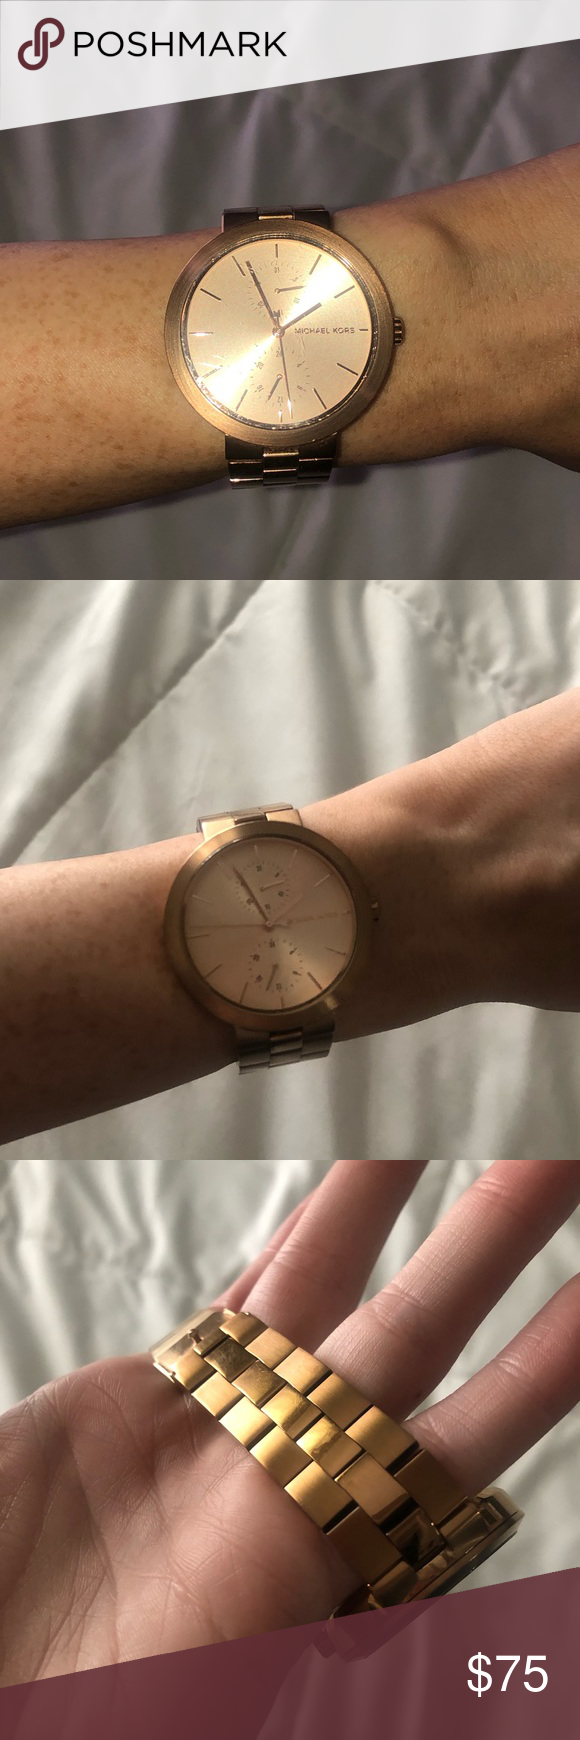 ROSE GOLD MICHAEL KORS WATCH some wear and tear but in